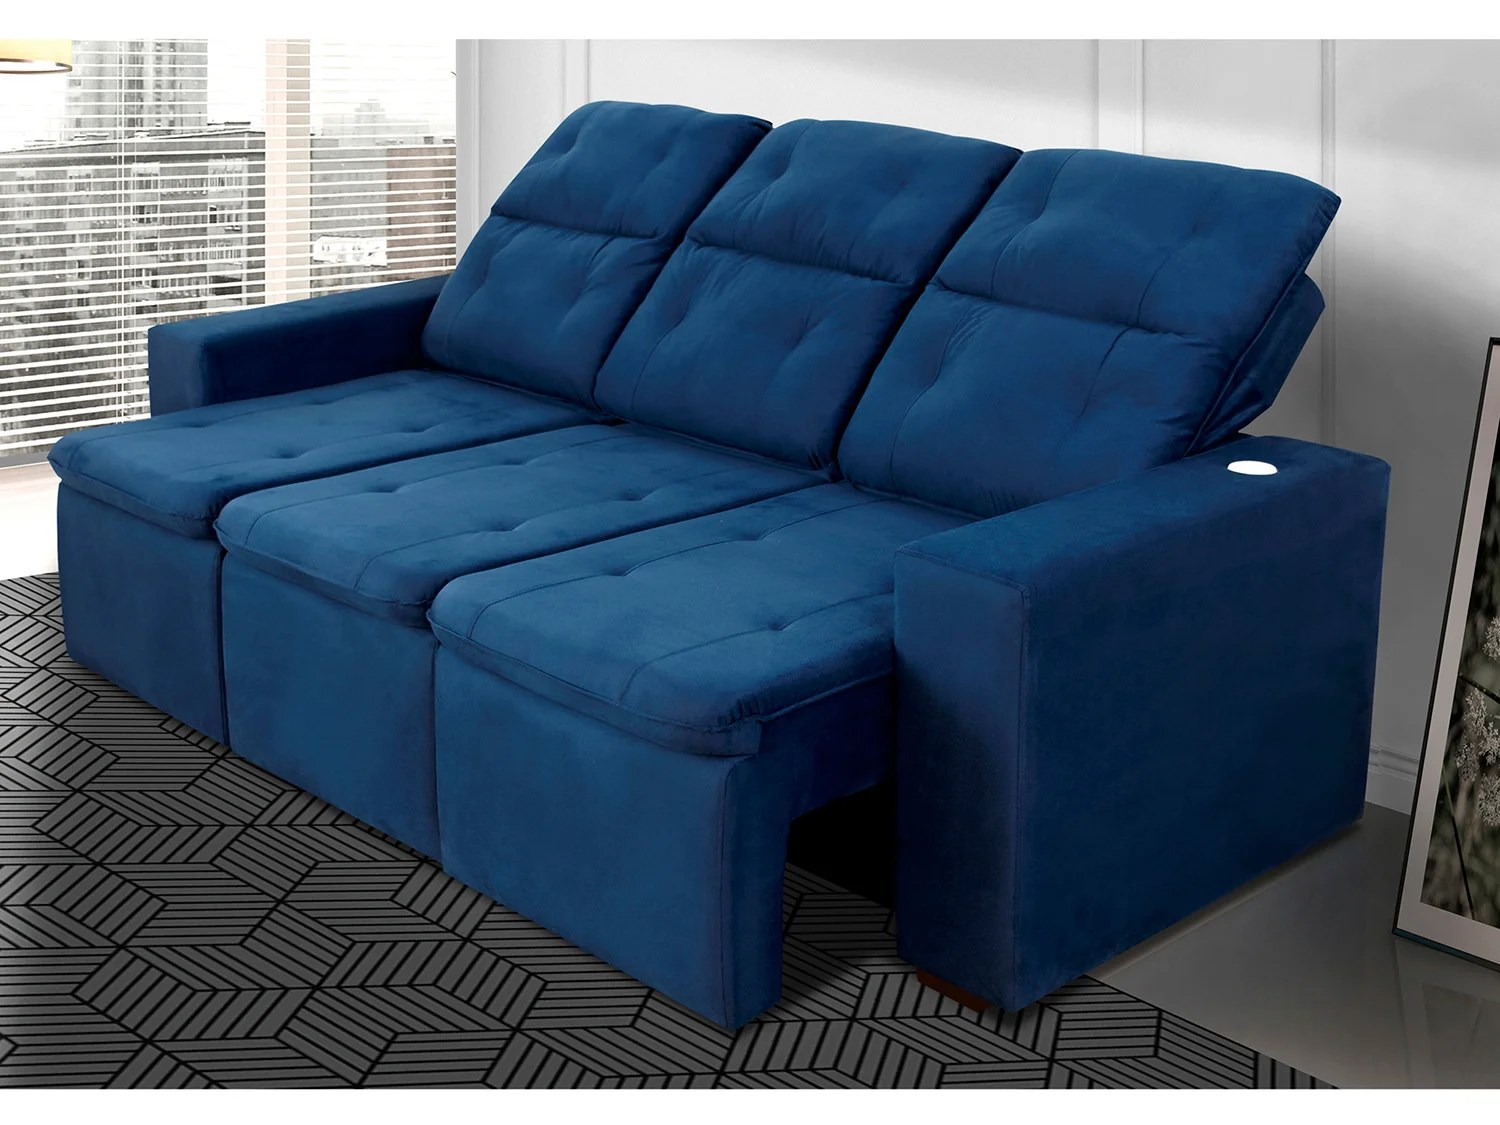 Sofa De Veludo Azul Sofa Retratil Veludo